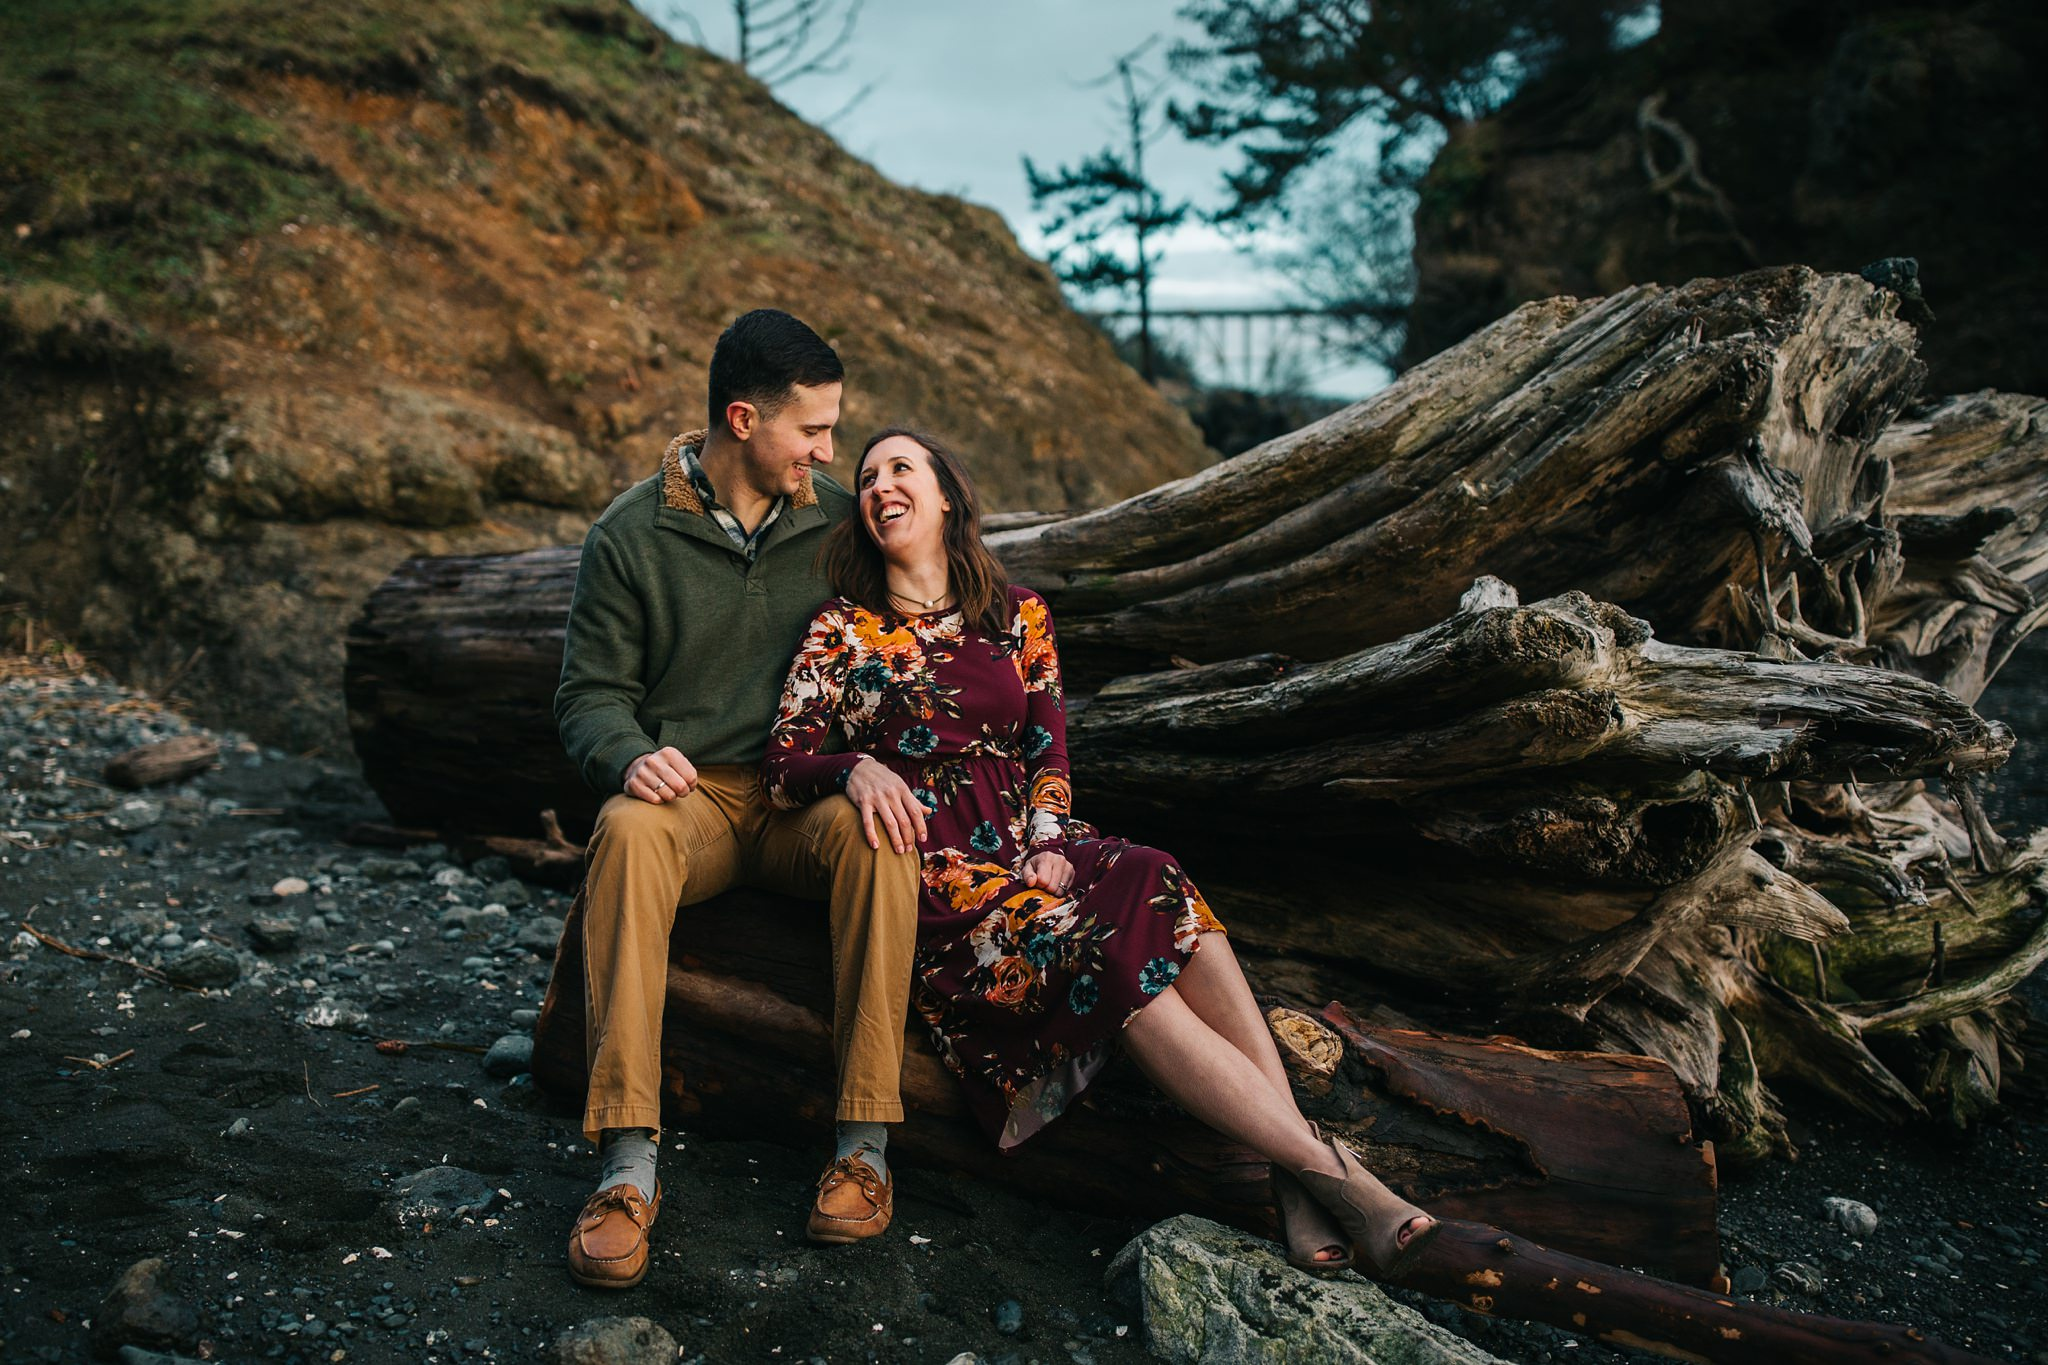 Whidbey-Island-Family-Photographer-Kara-Chappell-Photography_1793.jpg